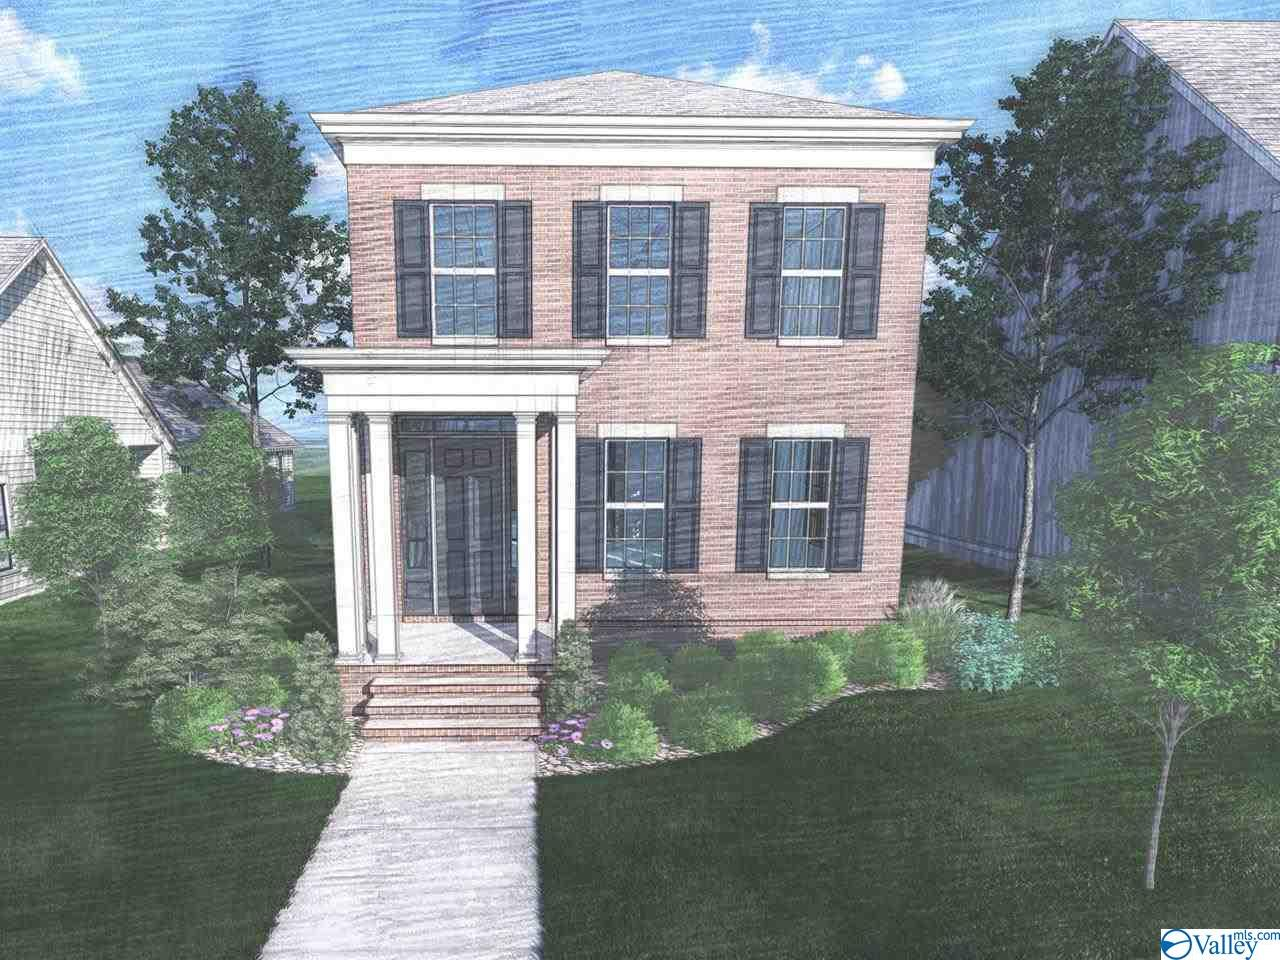 Under Construction-Come home to this attractive 2-story brick home in the Village of Providence that offers the combination of low maintenance, clean lines & modern interior design. This home boost an open concept design complete with an attractive kitchen featuring a large island just past the living and dining space. Enjoy the porch directly off kitchen with great view & access to sideyard. The master includes a soaking tub, tile shower, & walk-in closet. Upstairs you'll find two charming bedrooms and a bathroom. Rear entry two-car garage. Residents & guest enjoy strolls to the town center along picturesque tree-lined sidewalks with the convenience of nearby schools, parks, stores, restaur